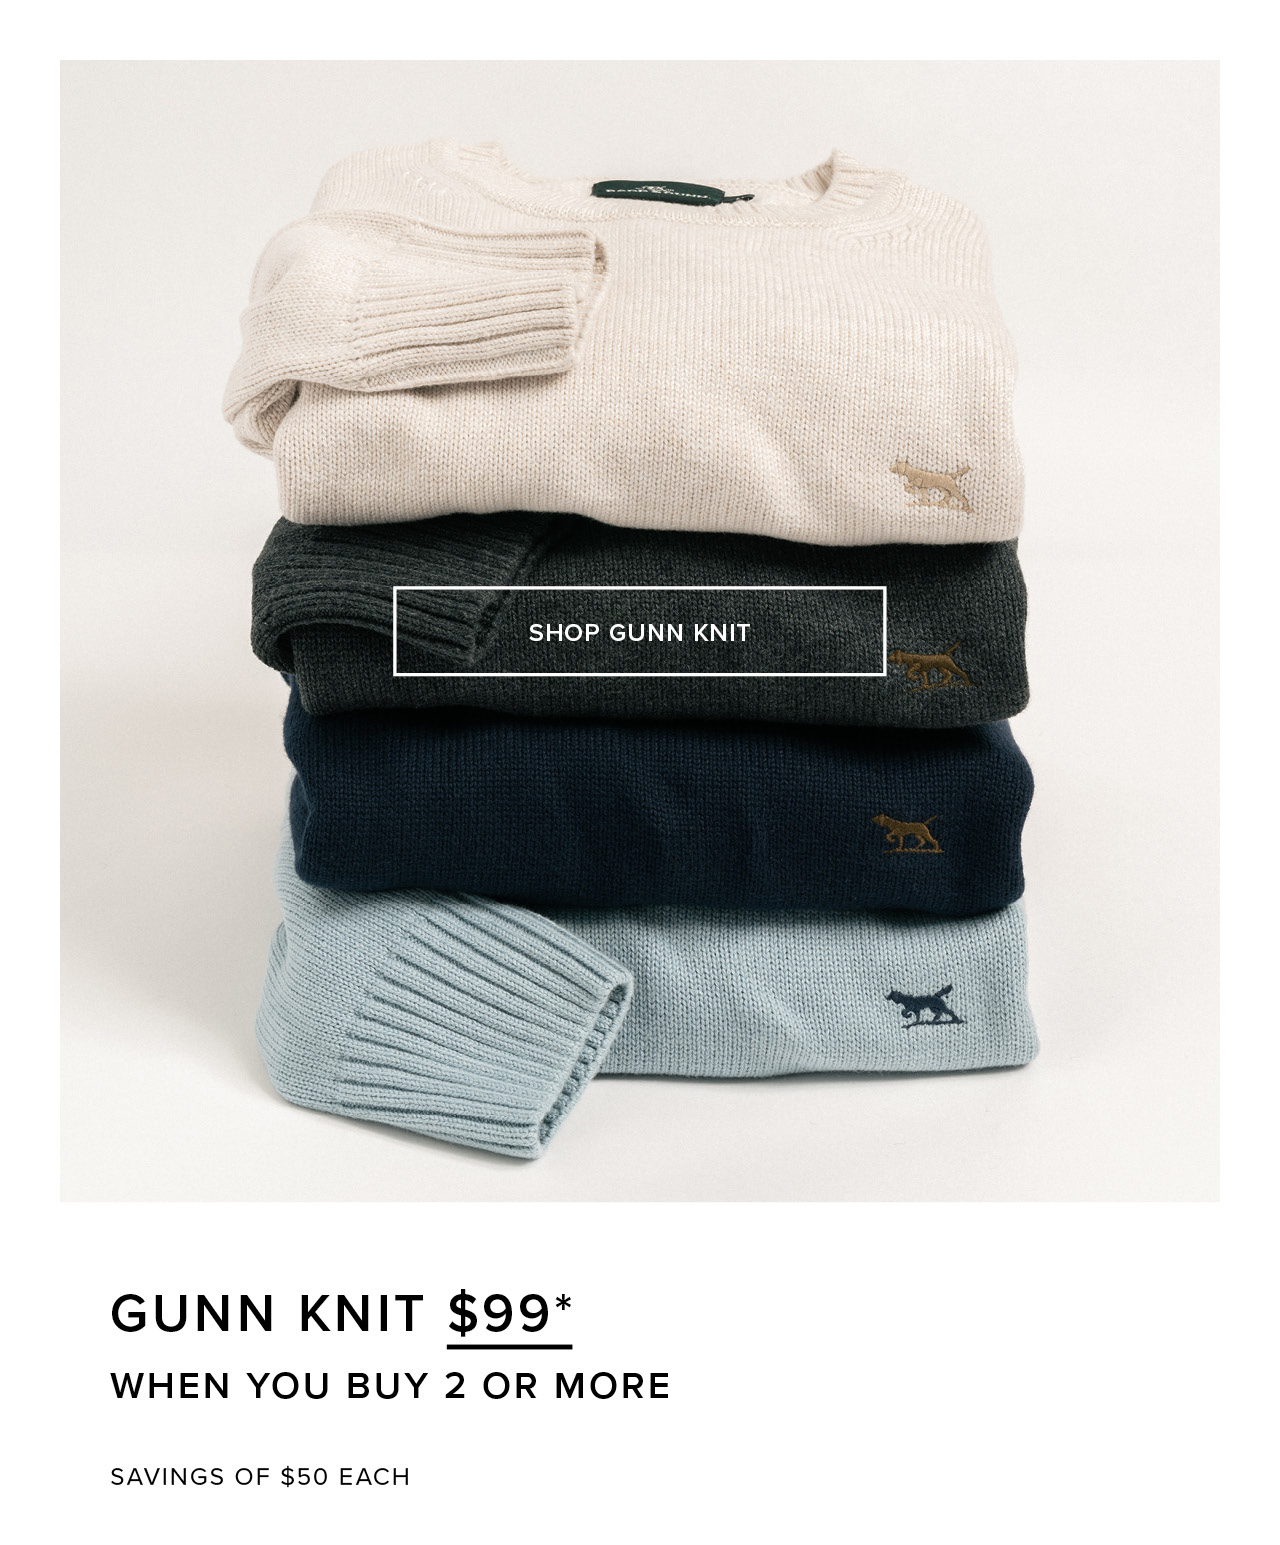 Gunn Knit - 99* When You Buy 2 Or More